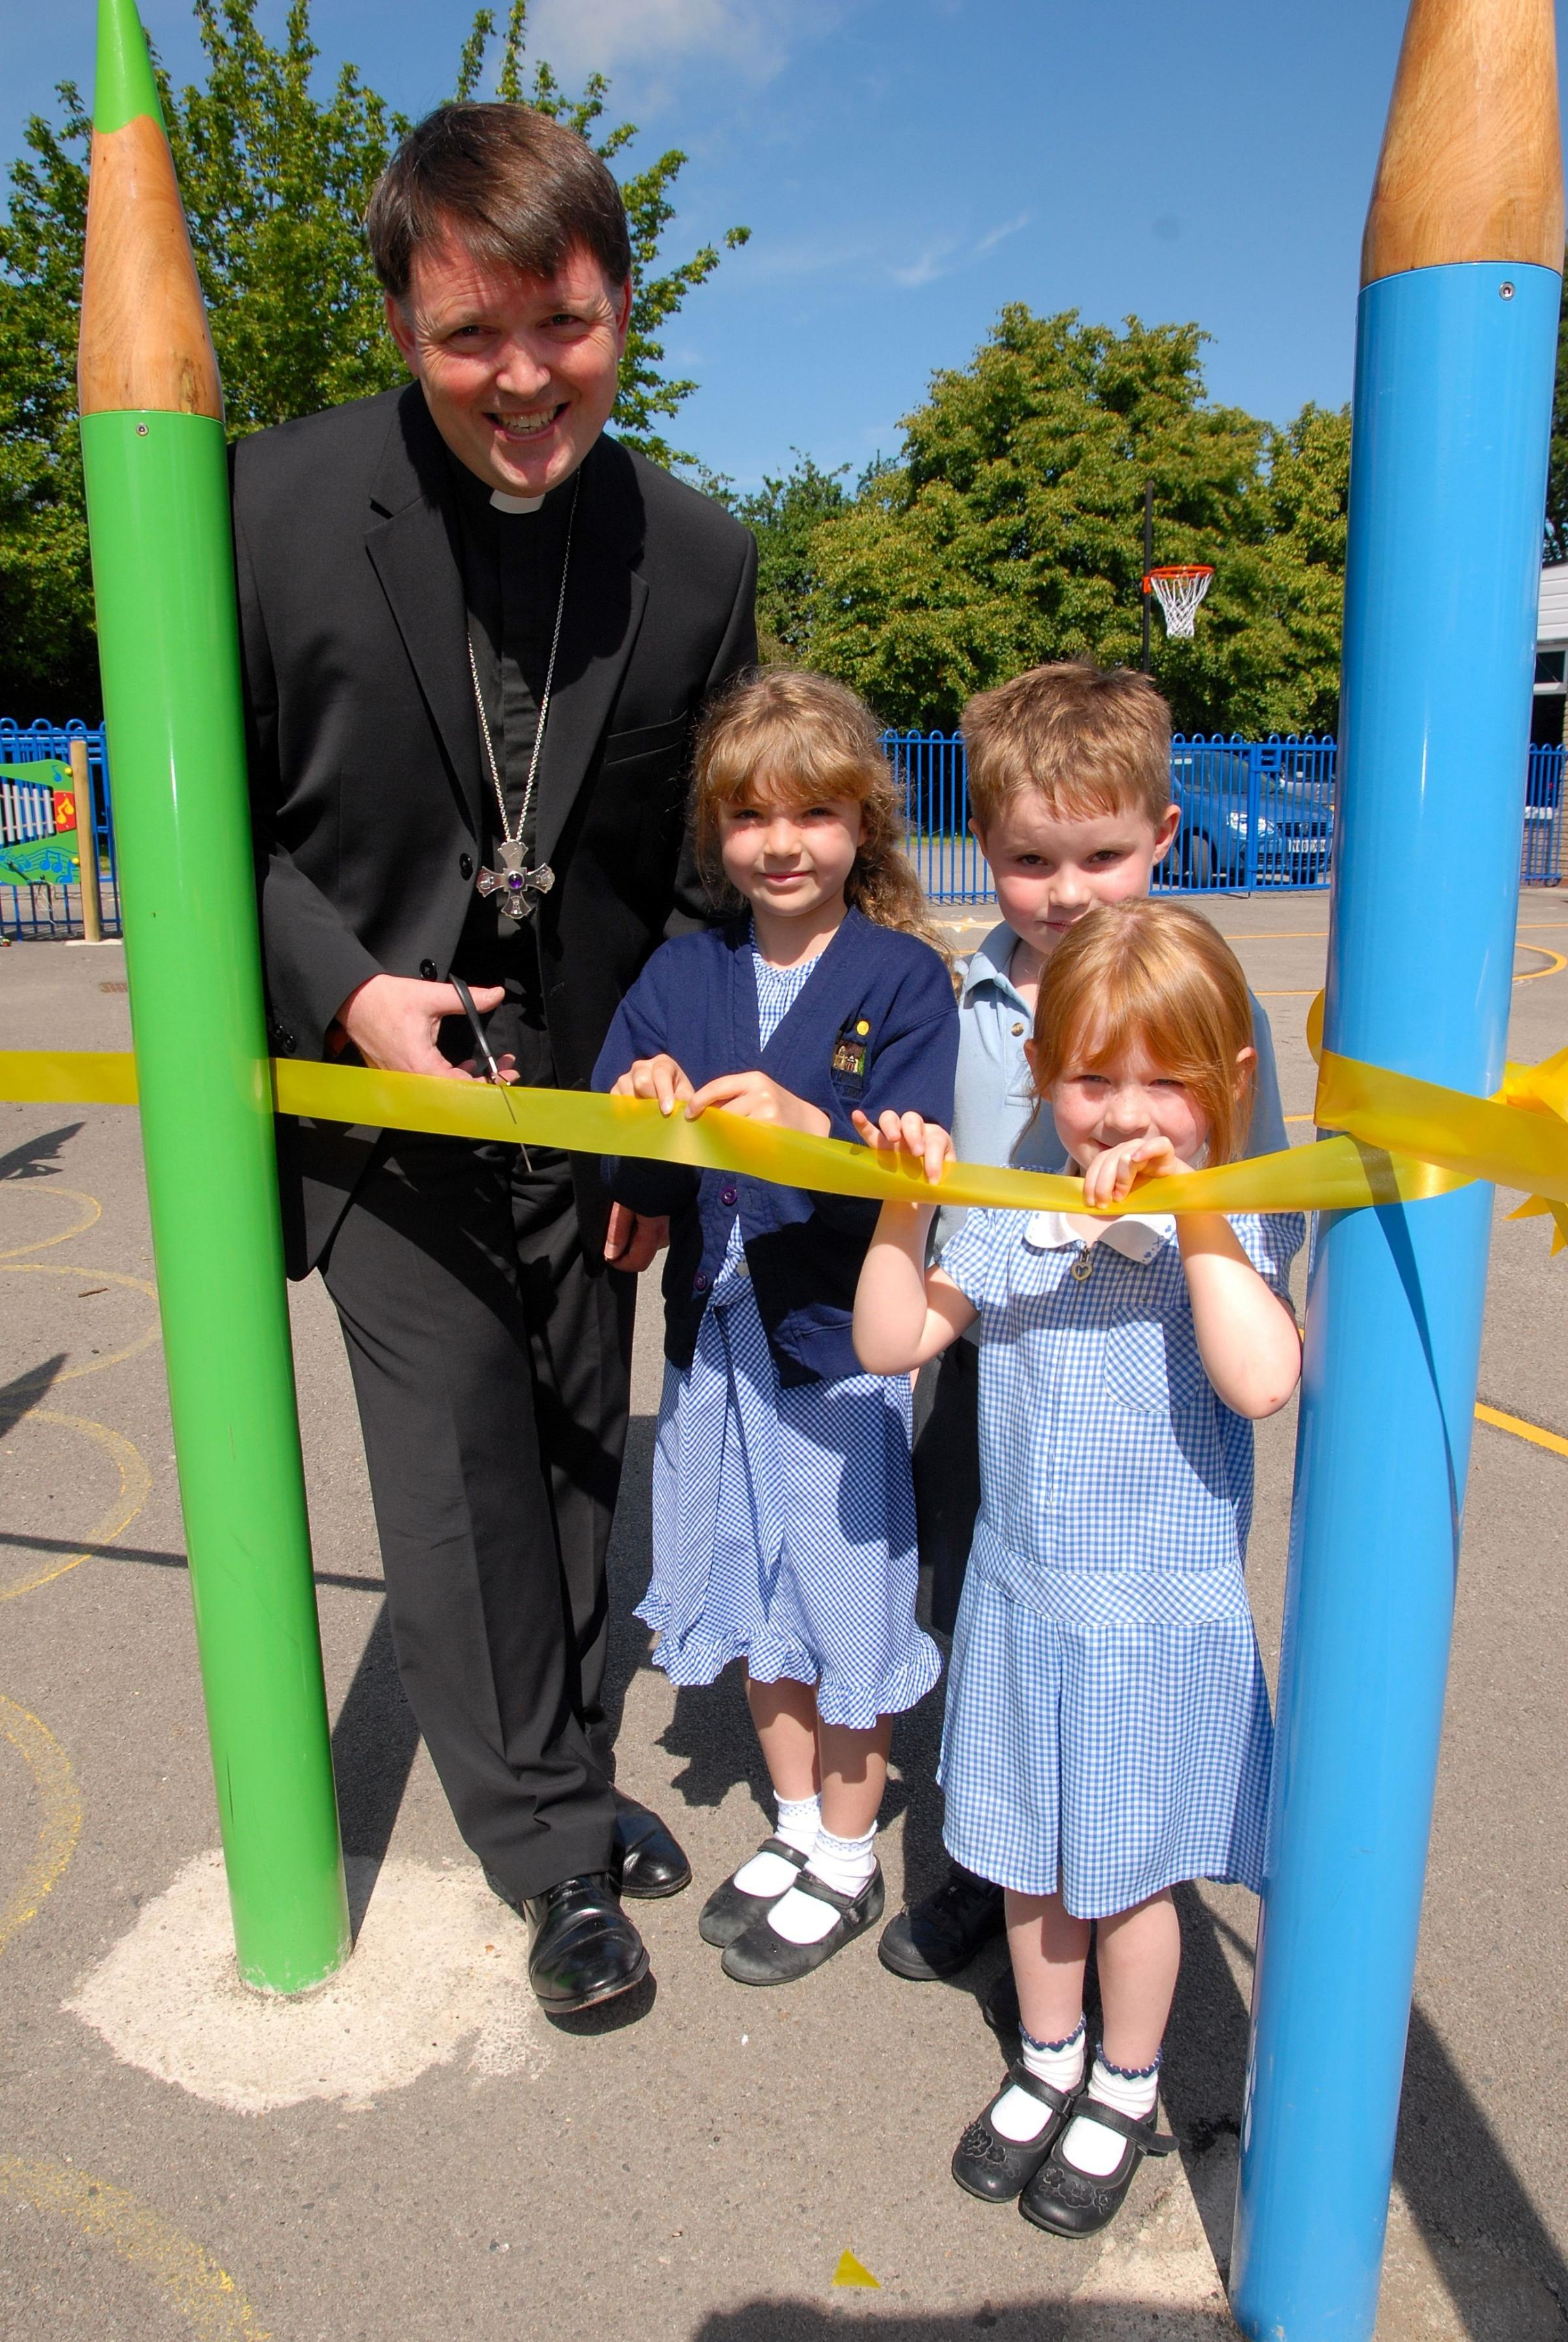 Children thrilled with £10,000 playground boost